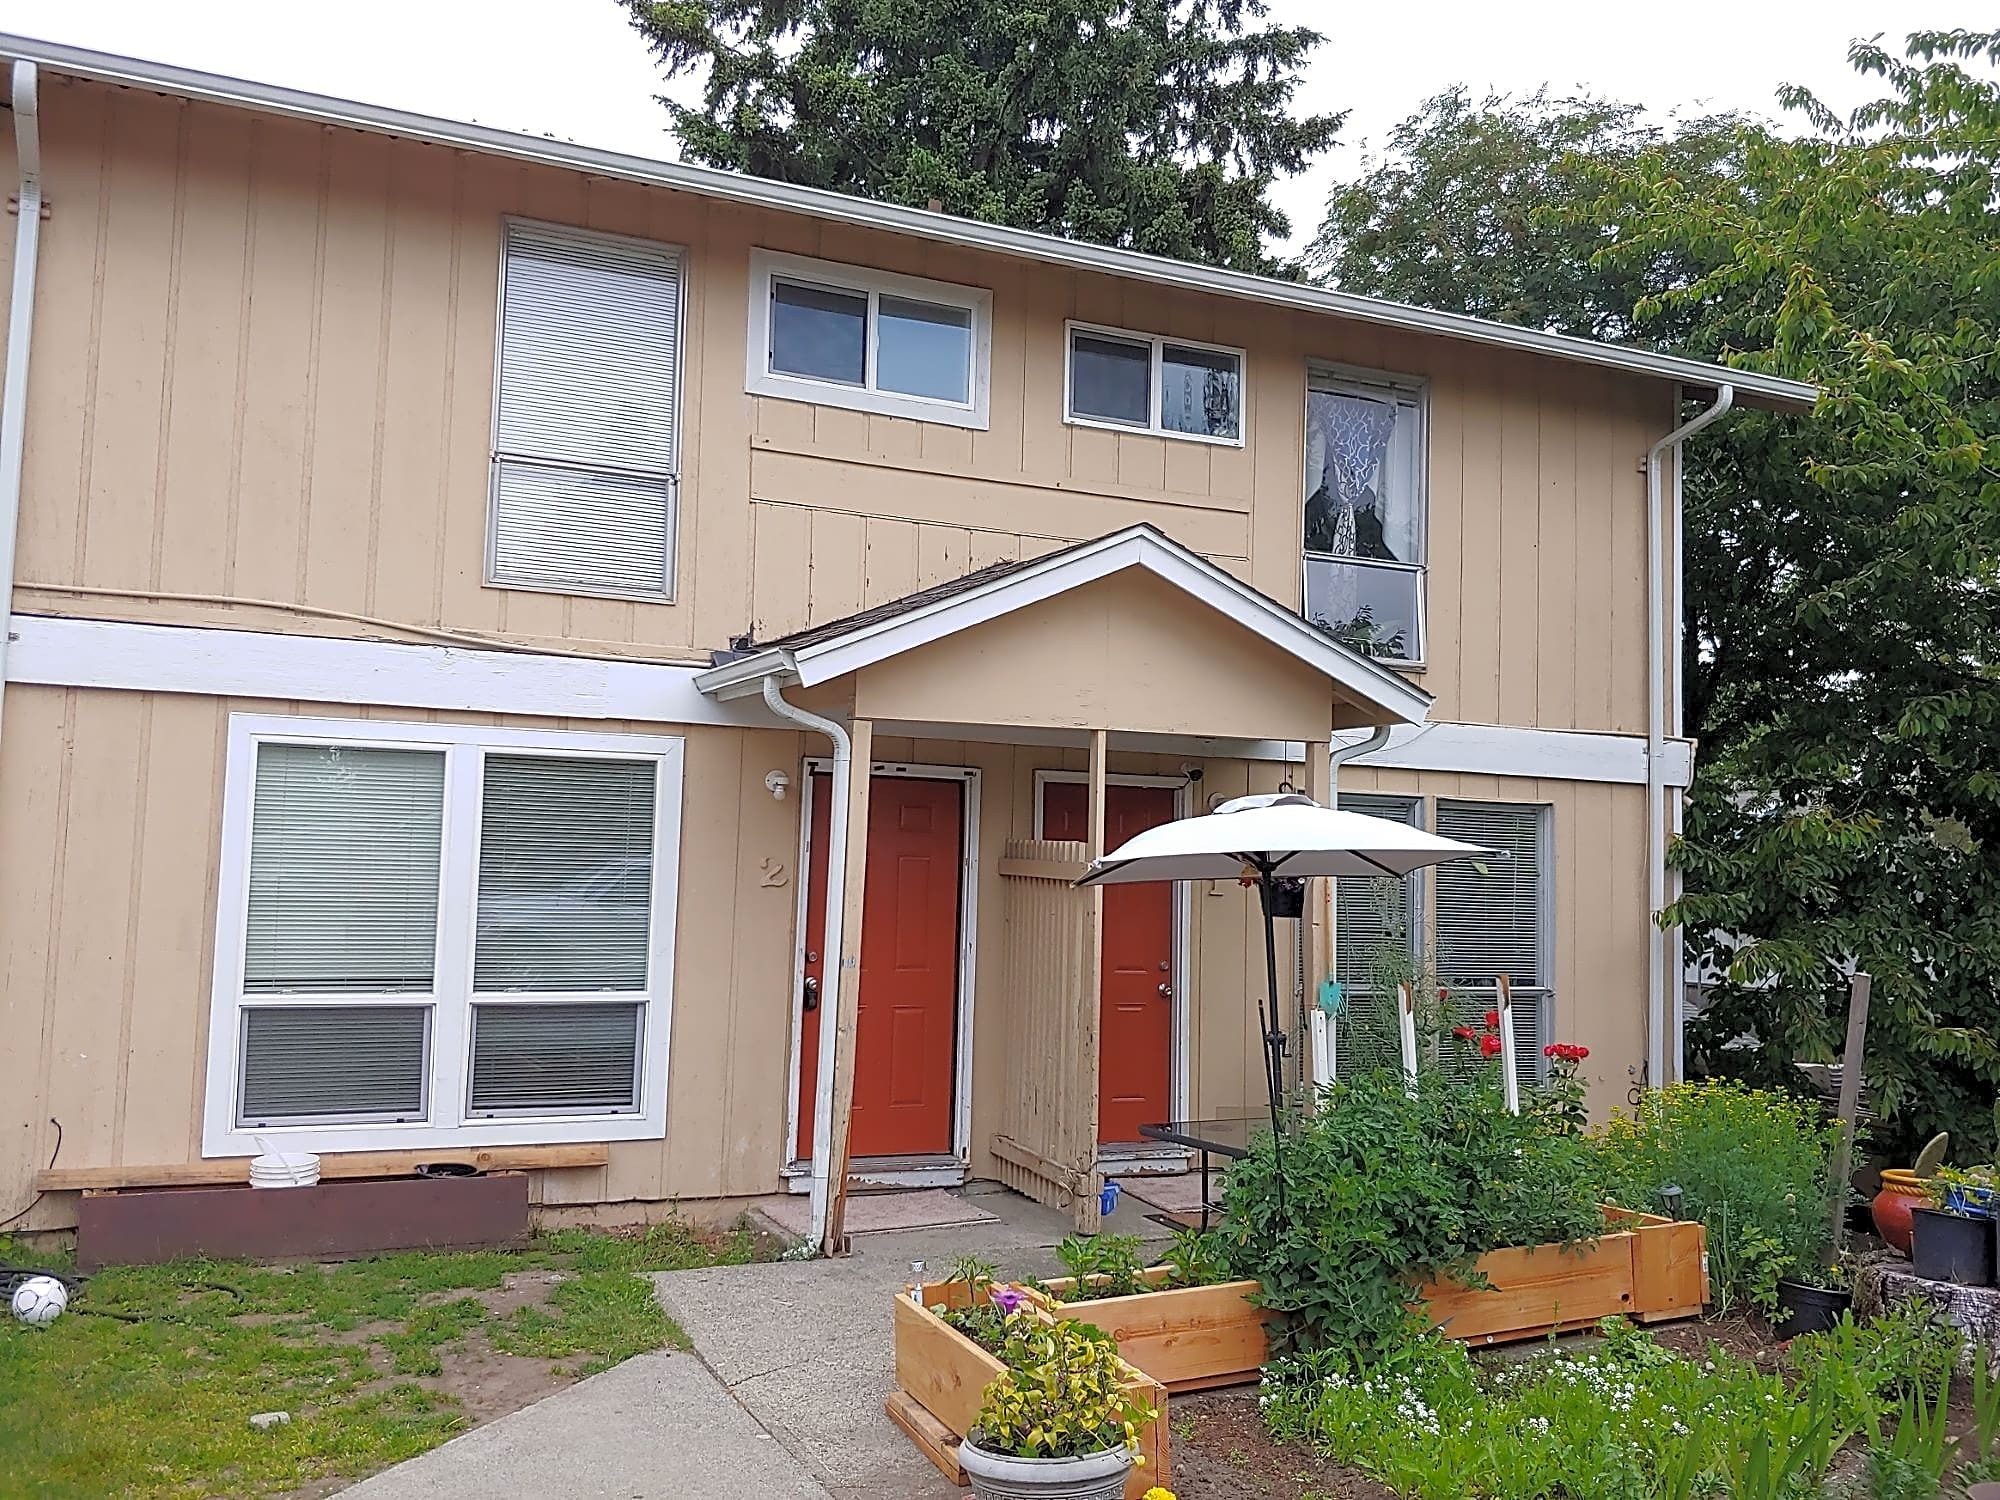 Duplex for Rent in Burien